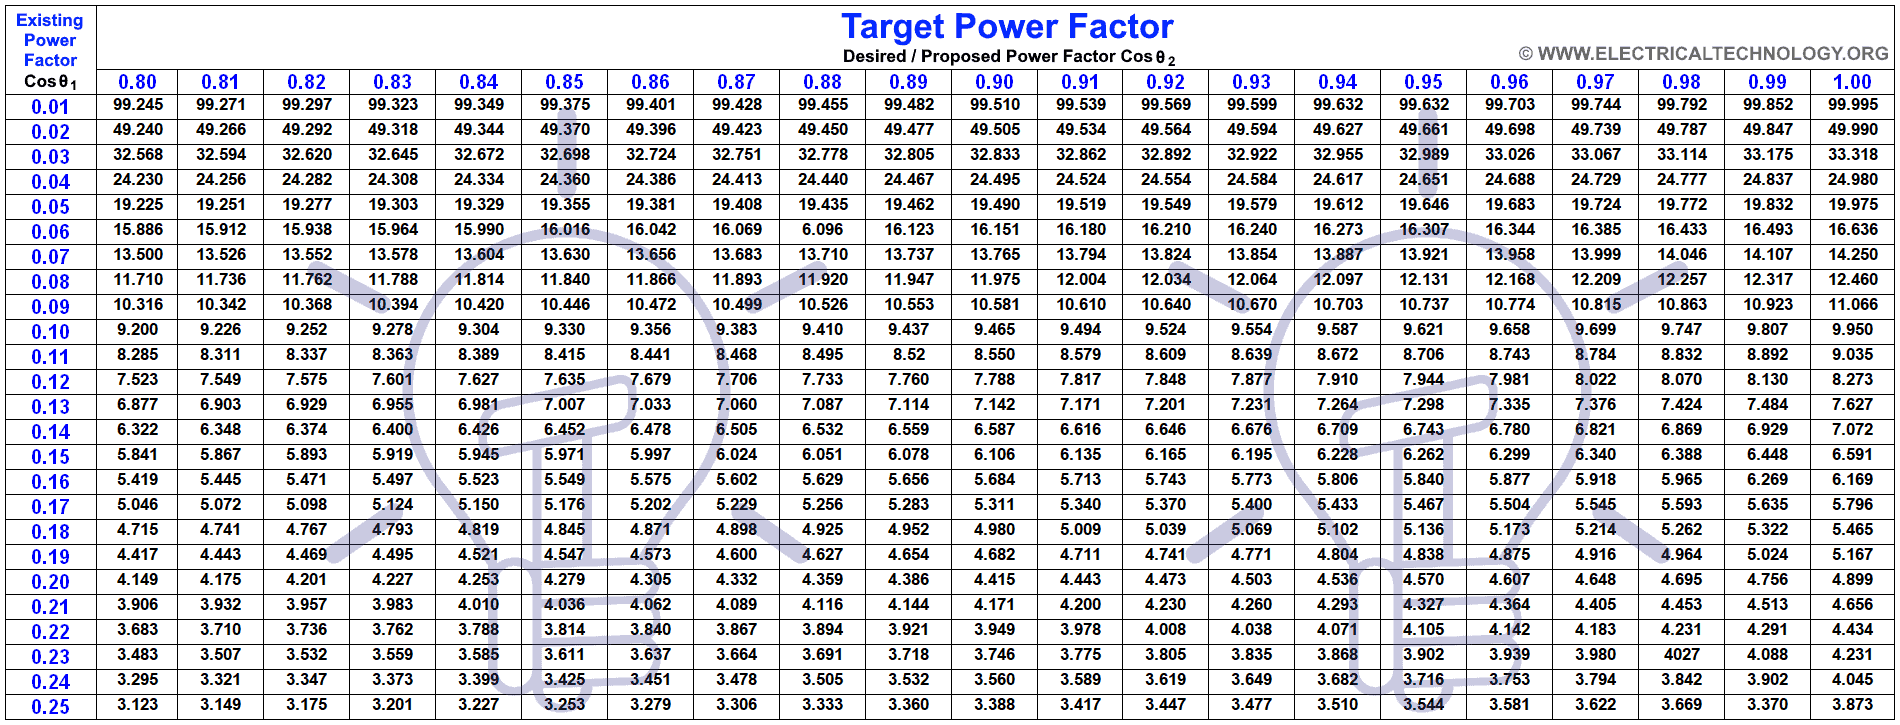 How to Calculate the Suitable Capacitor Size in Farads & kVAR for Power factor Improvement (Easiest way ever)